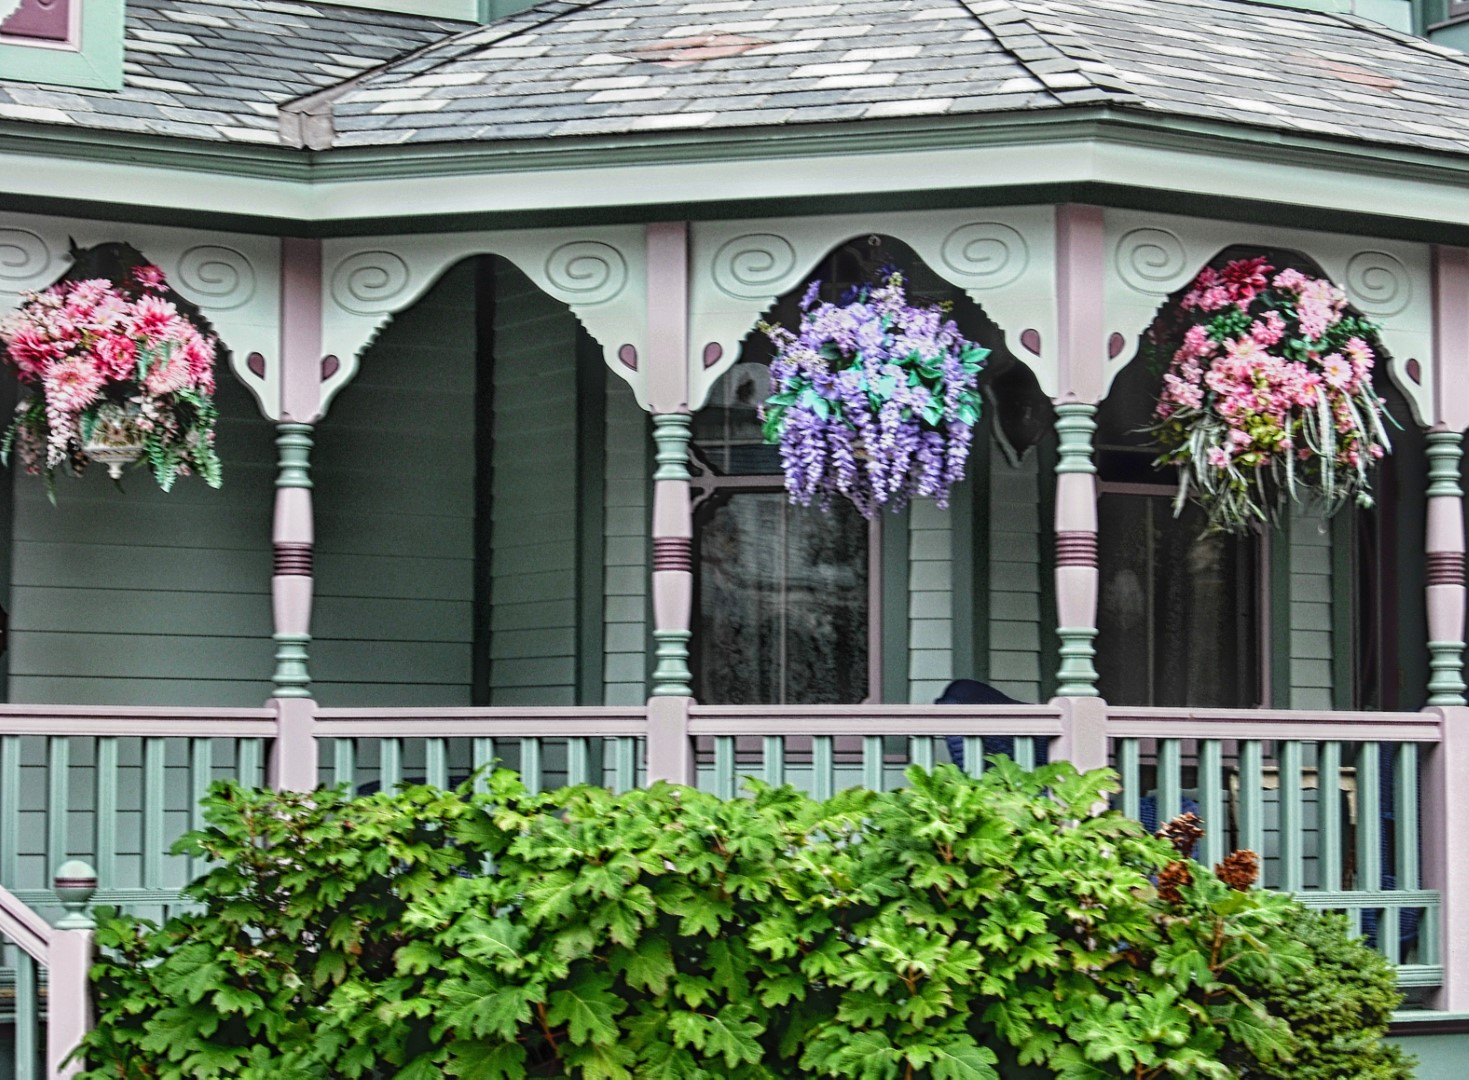 Victorian house porch with hanging baskets